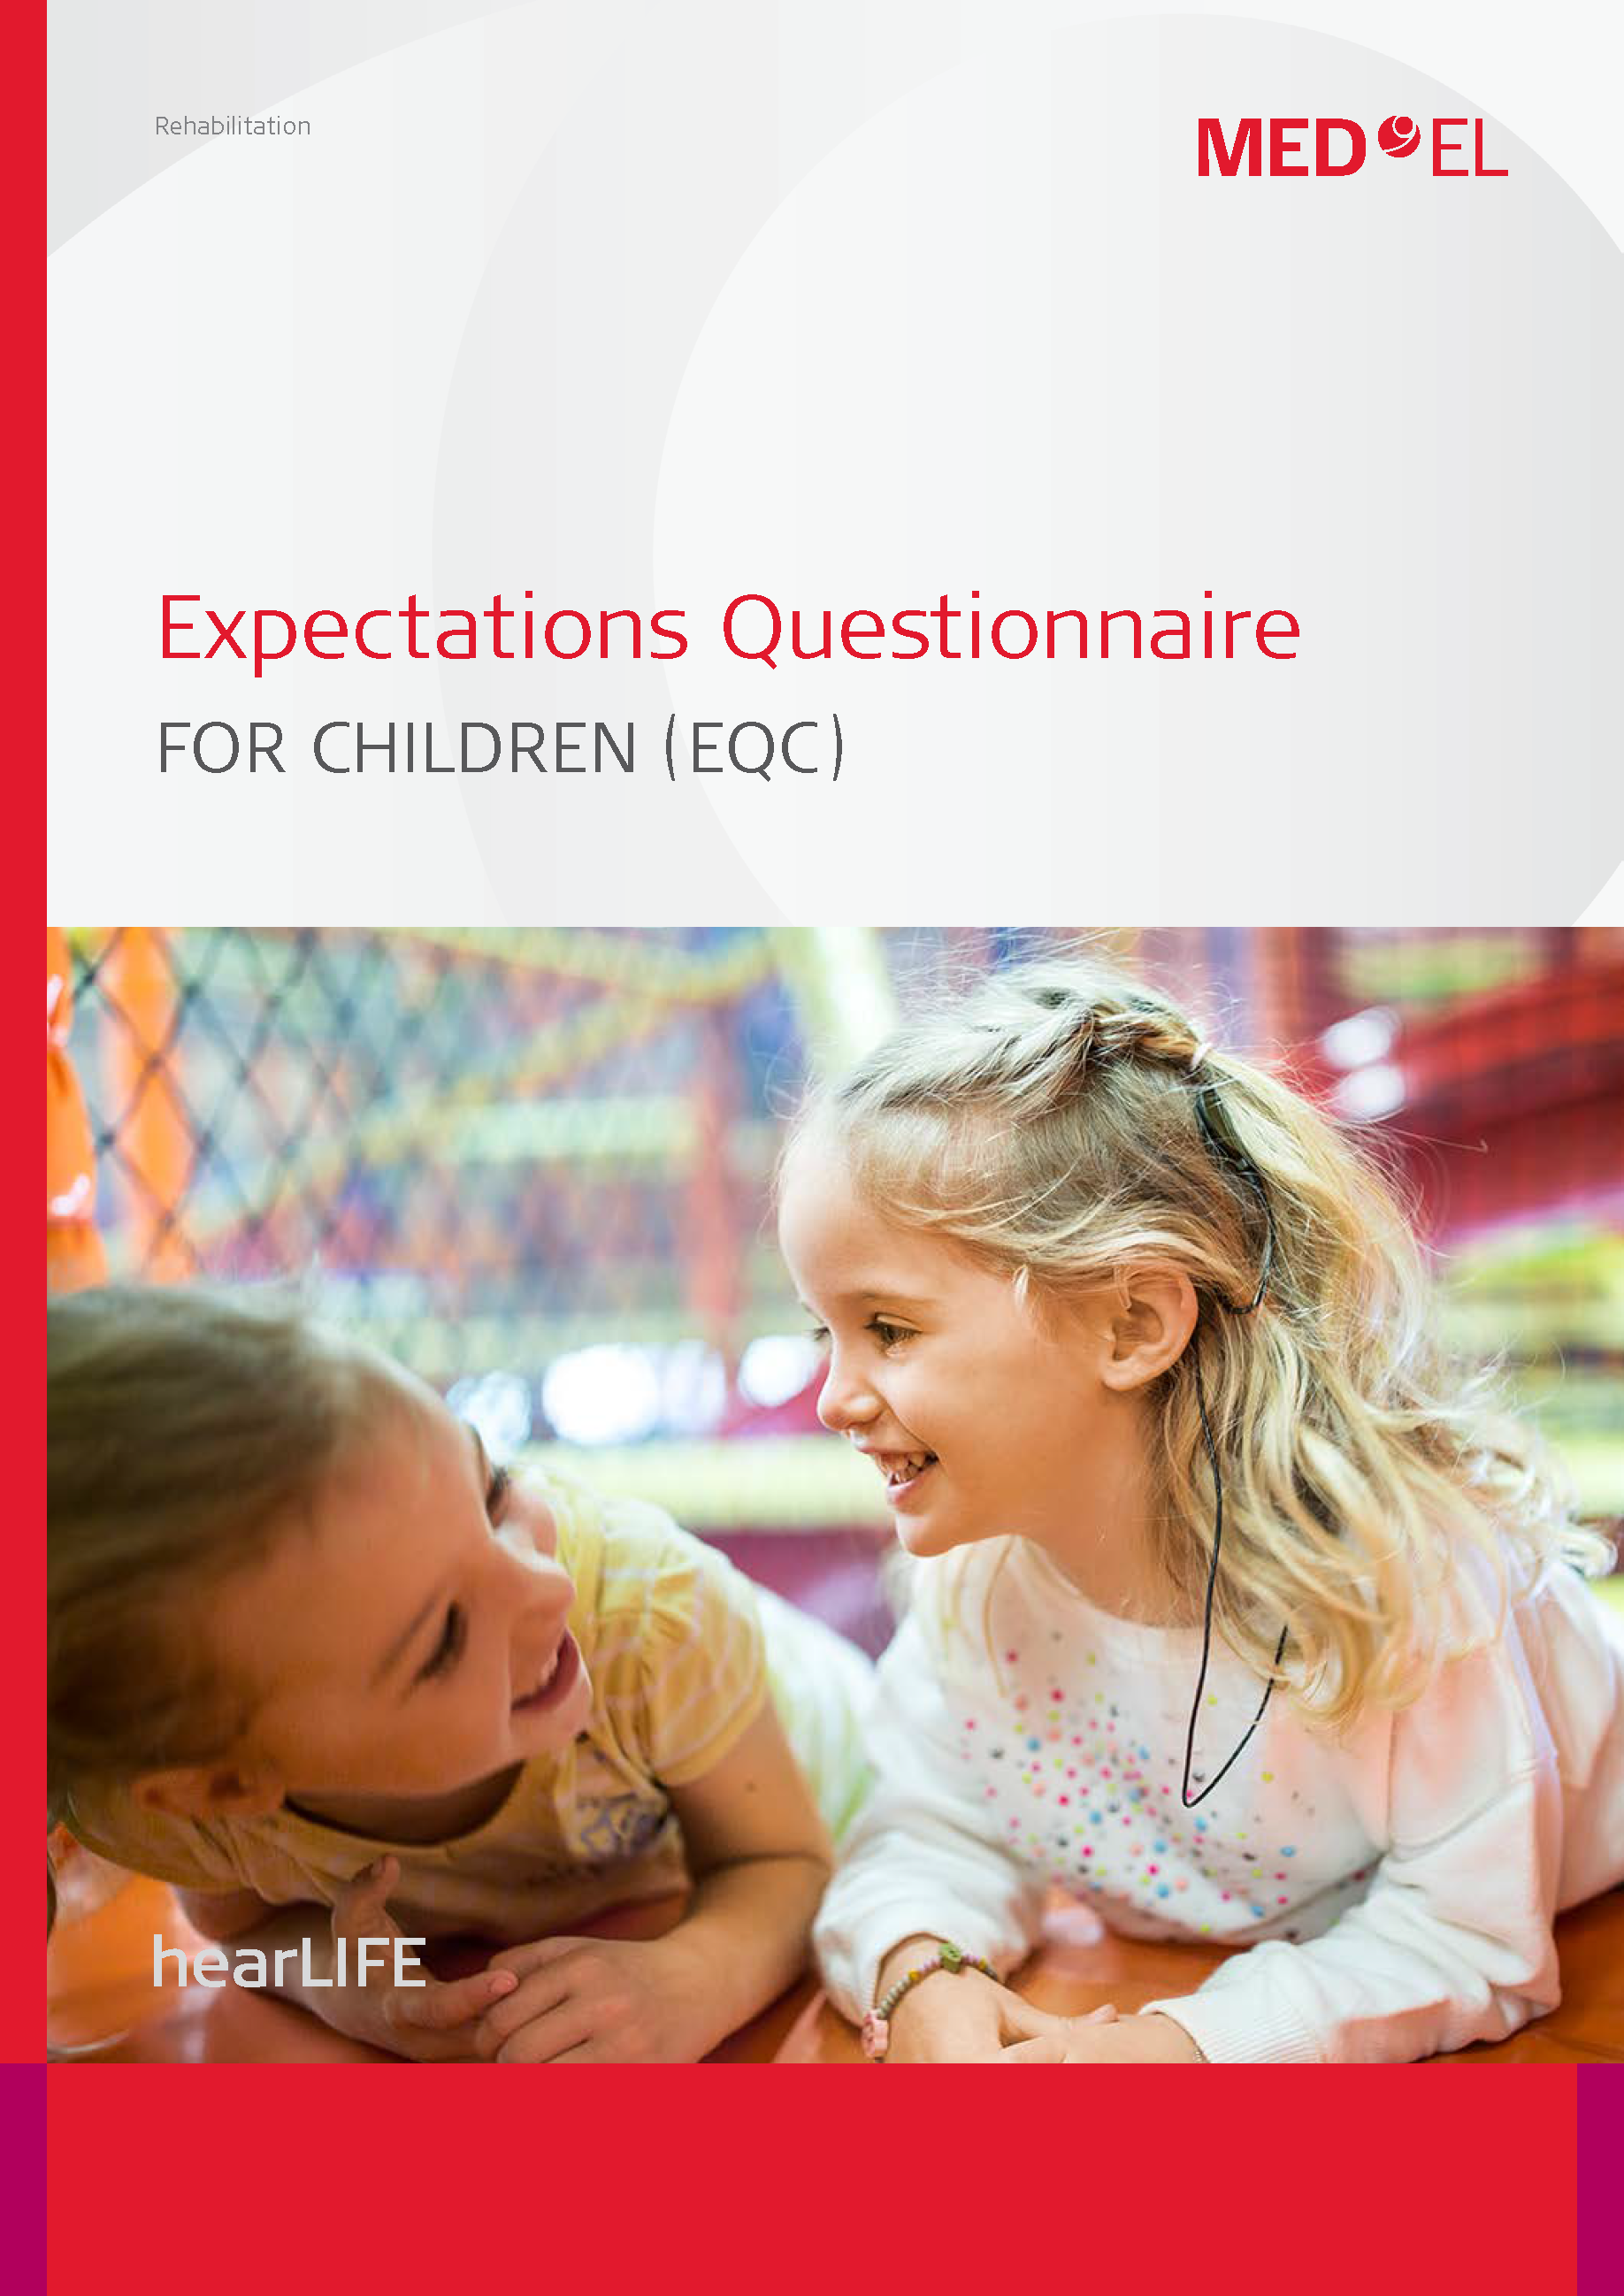 Expectations Questionnaire for Children